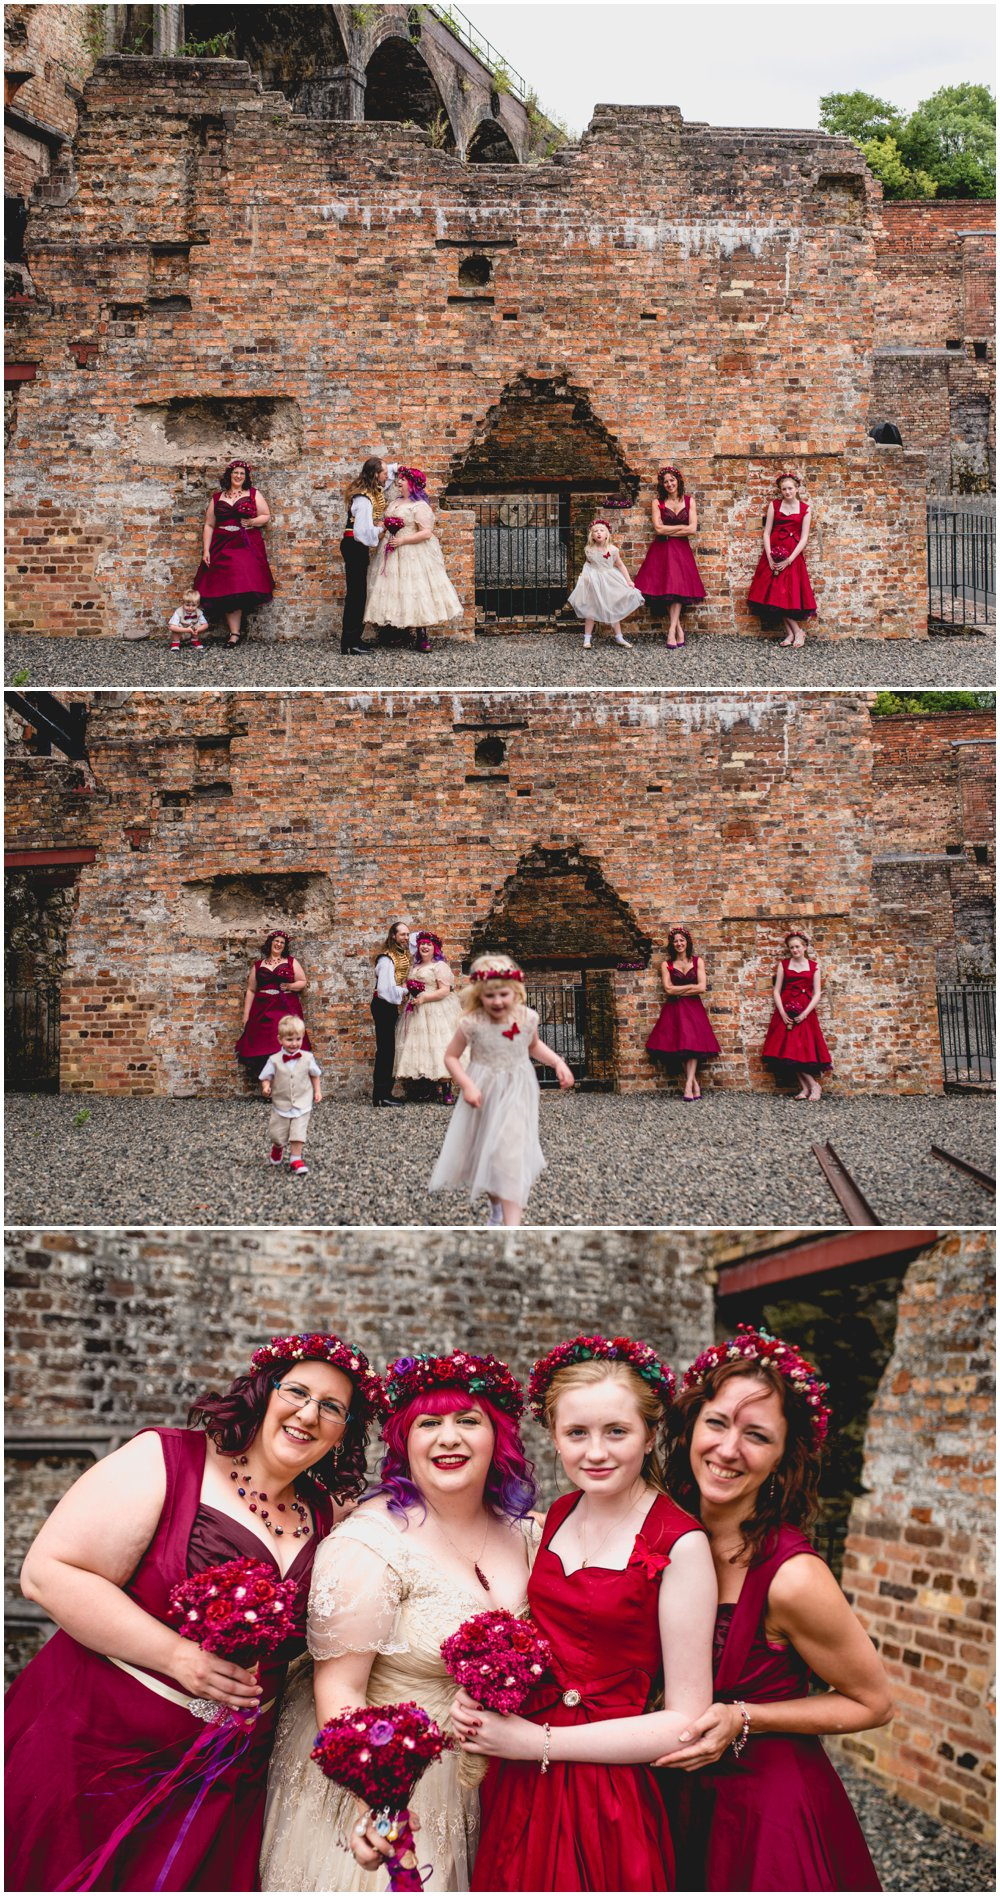 Fay and Michael - Alternative, Carnival, re-enactment themed, pink and maroon wedding at Enginuity Museum in Ironbridge, Telford by West Midlands and Birmingham based alternative wedding photographer Lisa Carpenter Photography